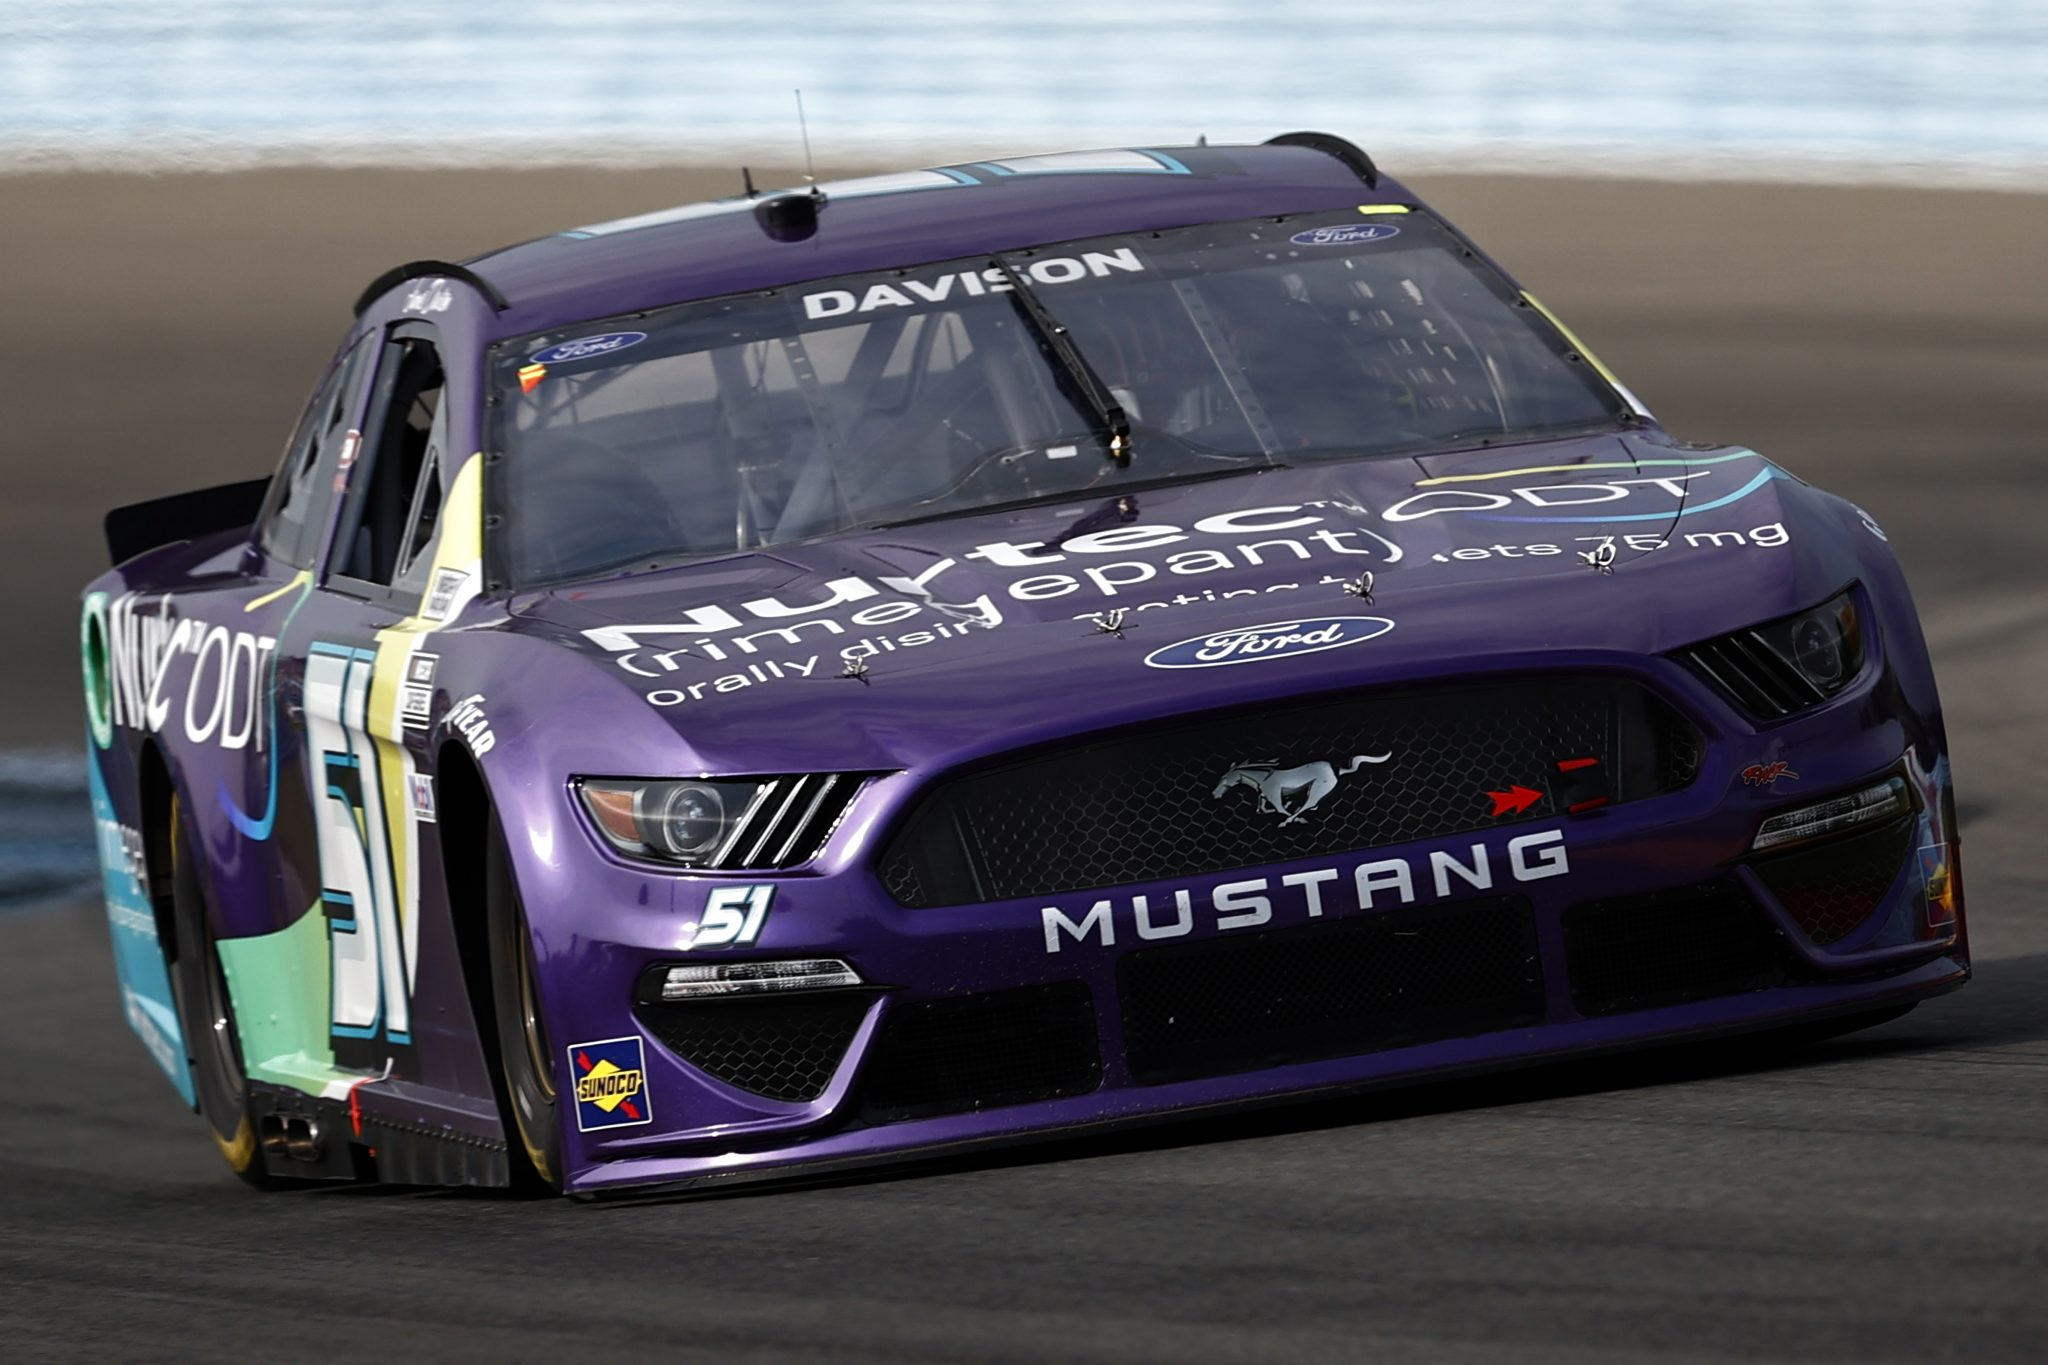 WATKINS GLEN, NEW YORK - AUGUST 08: James Davison, driver of the #51 Nurtec ODT Chevrolet, drives during the NASCAR Cup Series Go Bowling at The Glen at Watkins Glen International on August 08, 2021 in Watkins Glen, New York. (Photo by Jared C. Tilton/Getty Images) | Getty Images